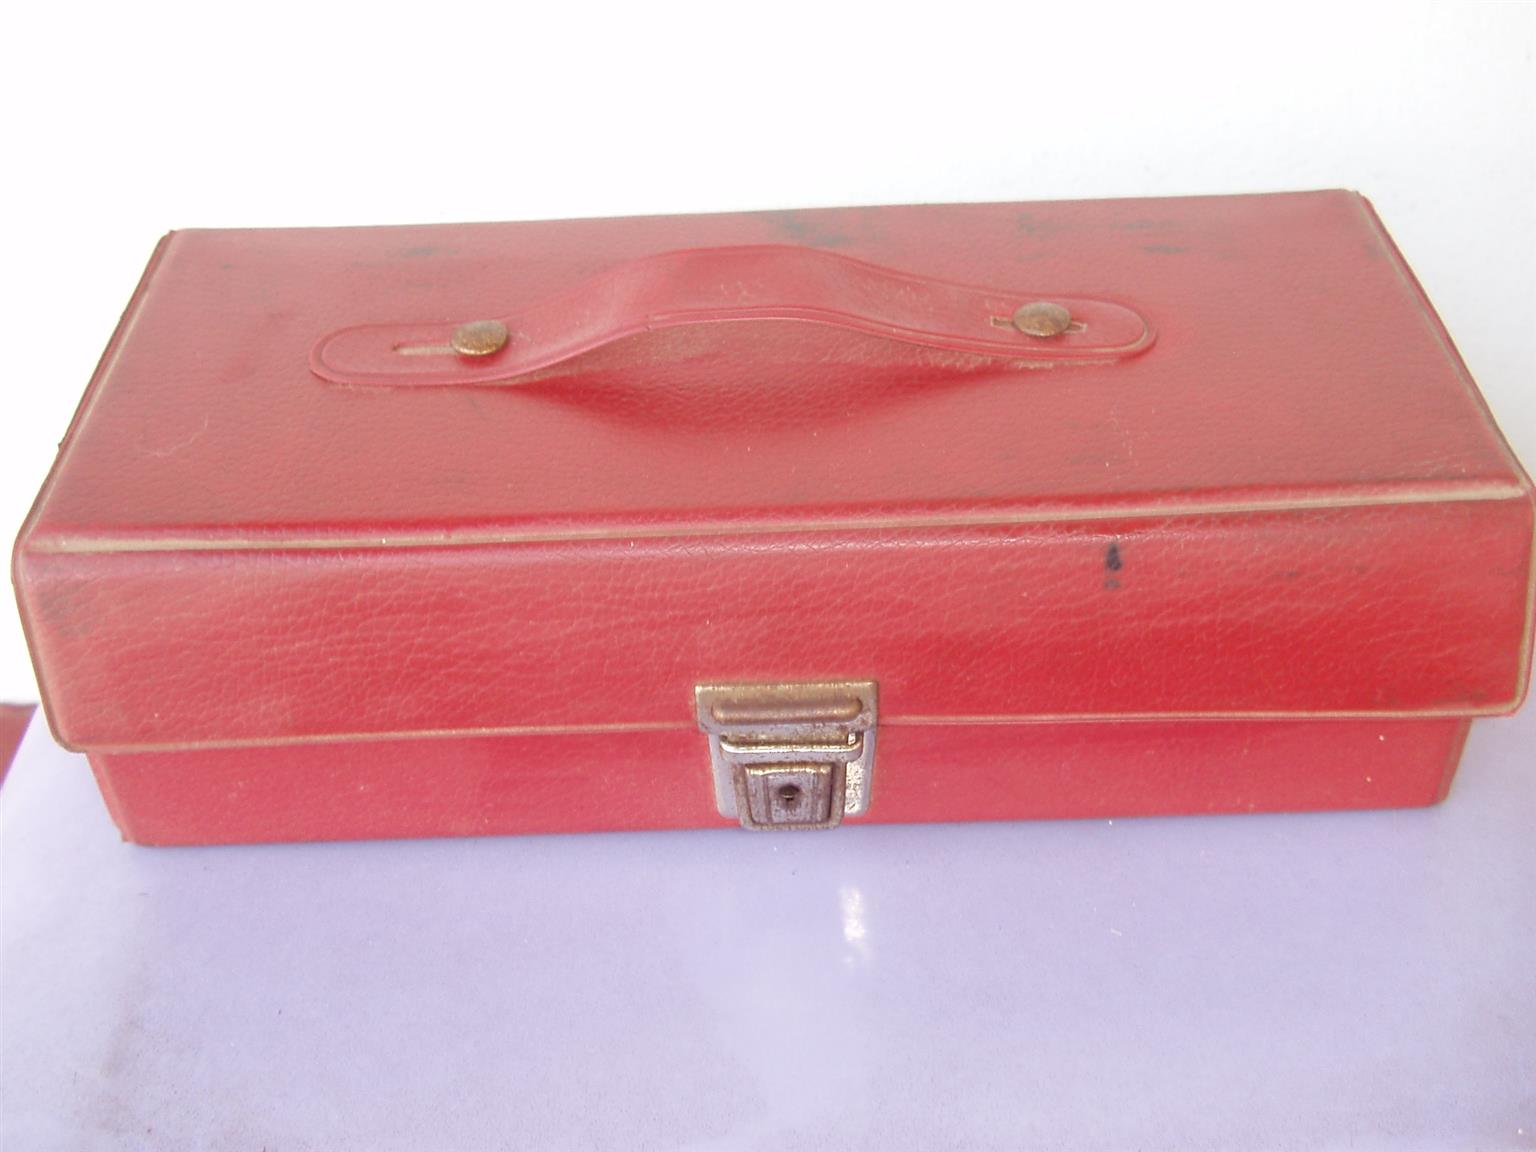 Cassettes Tapes - Music MFP selection - 14 tapes in Red carry case